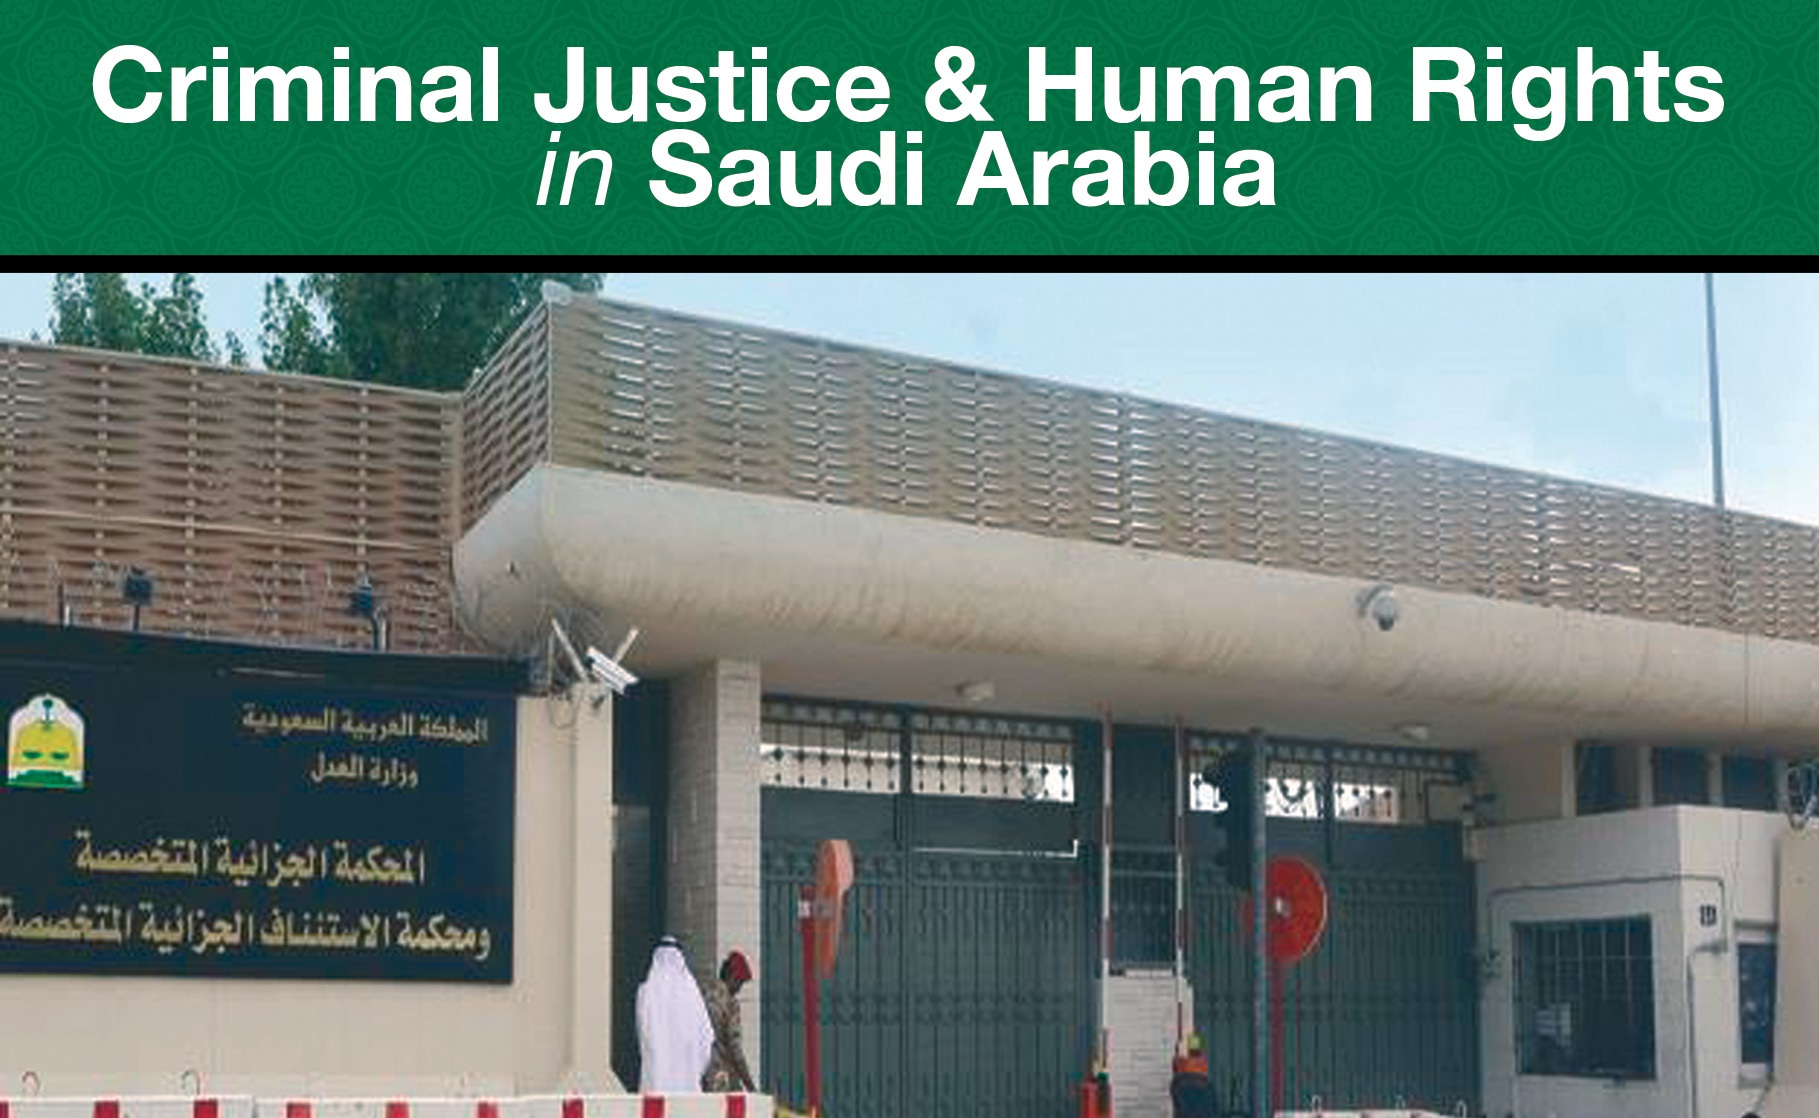 human rights in saudi arabia Saudi arabian prosecutors are seeking the death sentence for five human rights activists, including a woman who is thought to be the first female campaigner in the country facing execution, rights.